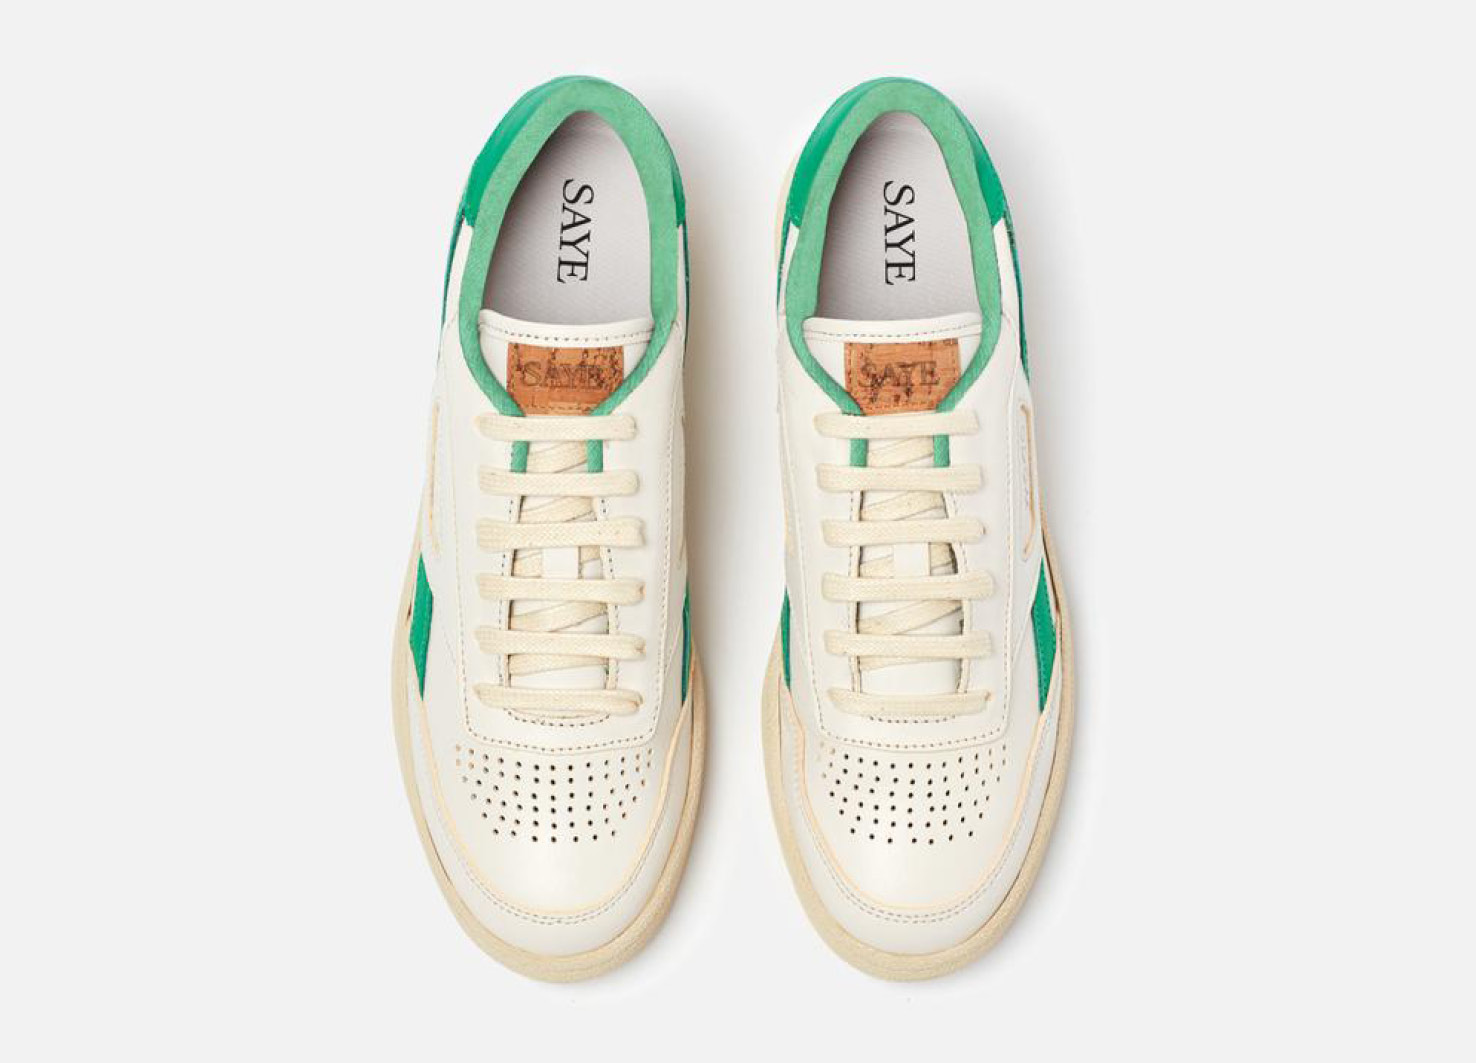 Ethical and sustainable sneakers – Saye